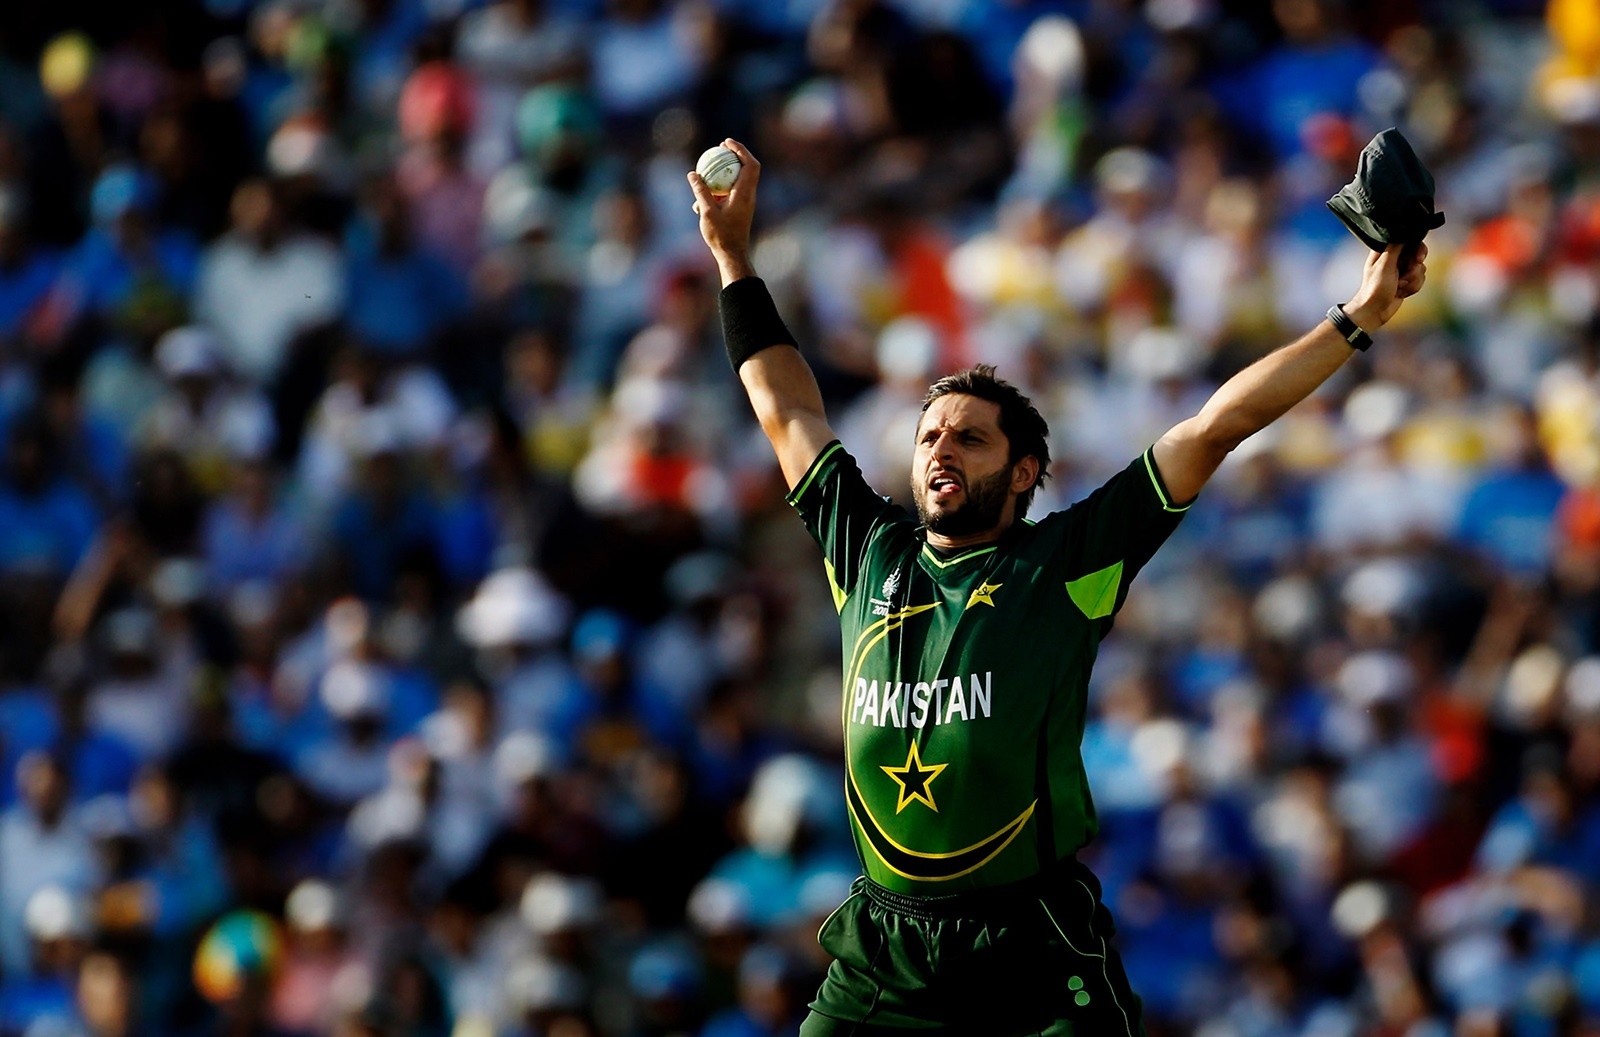 Former Pakistan Cricket Team Captain Shahid Khan Afridi. PHOTO: FILE PHOTO